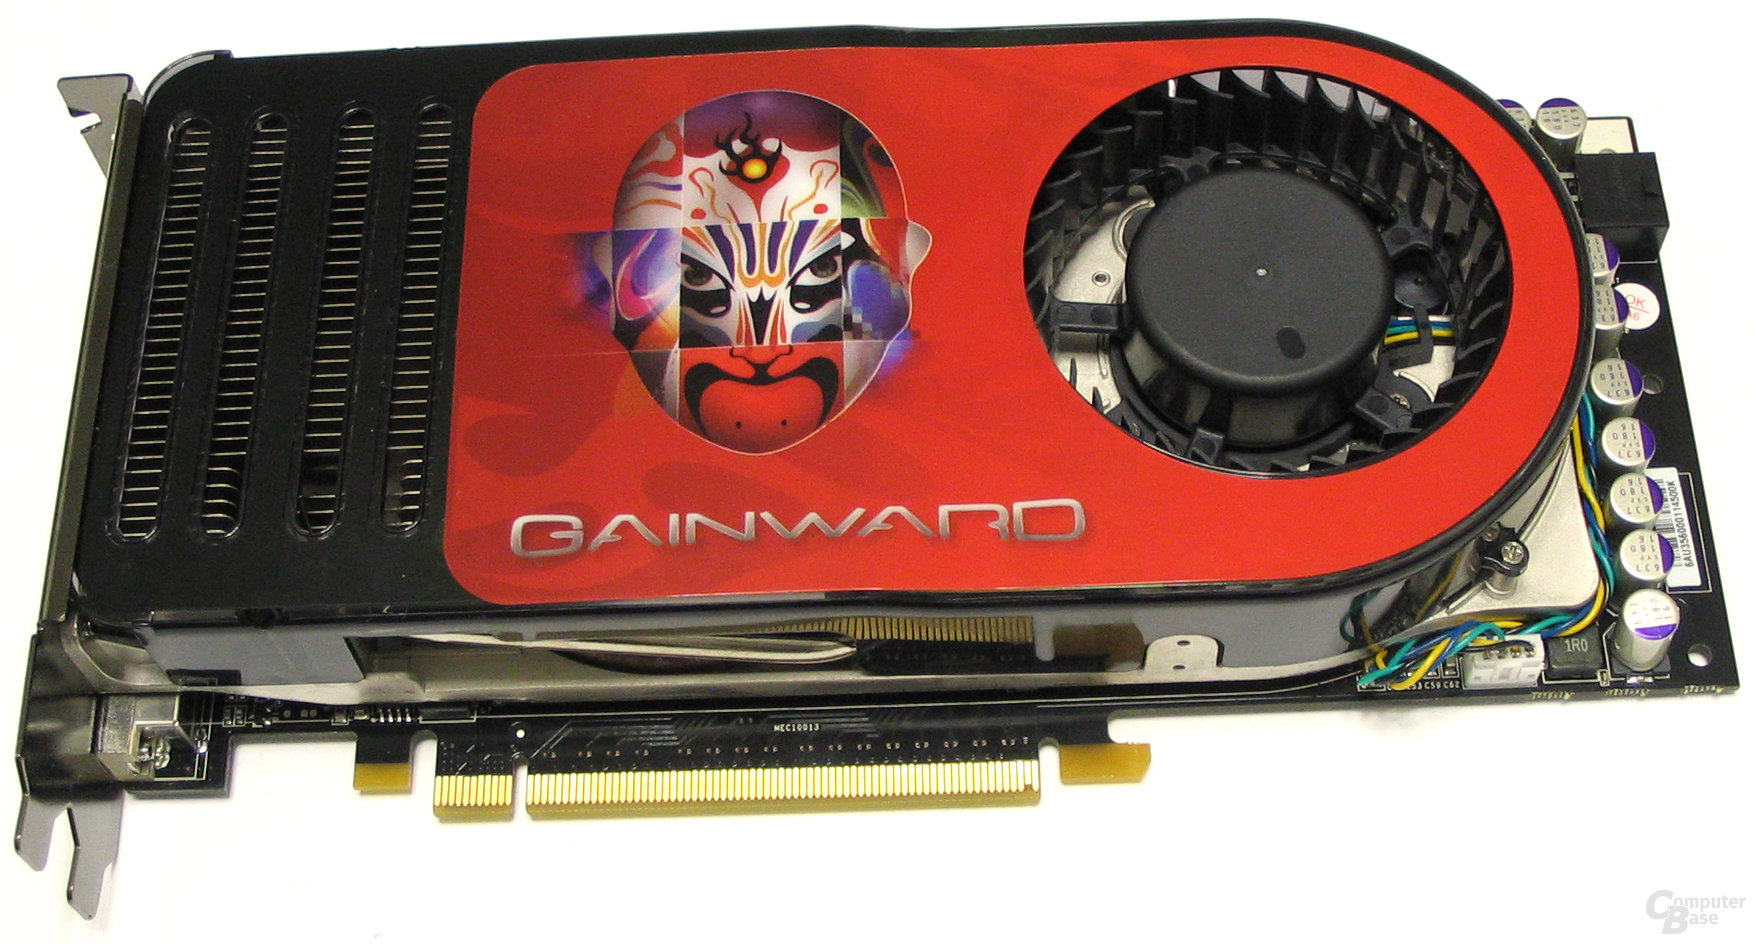 Gainward GeForce 8800 GTS